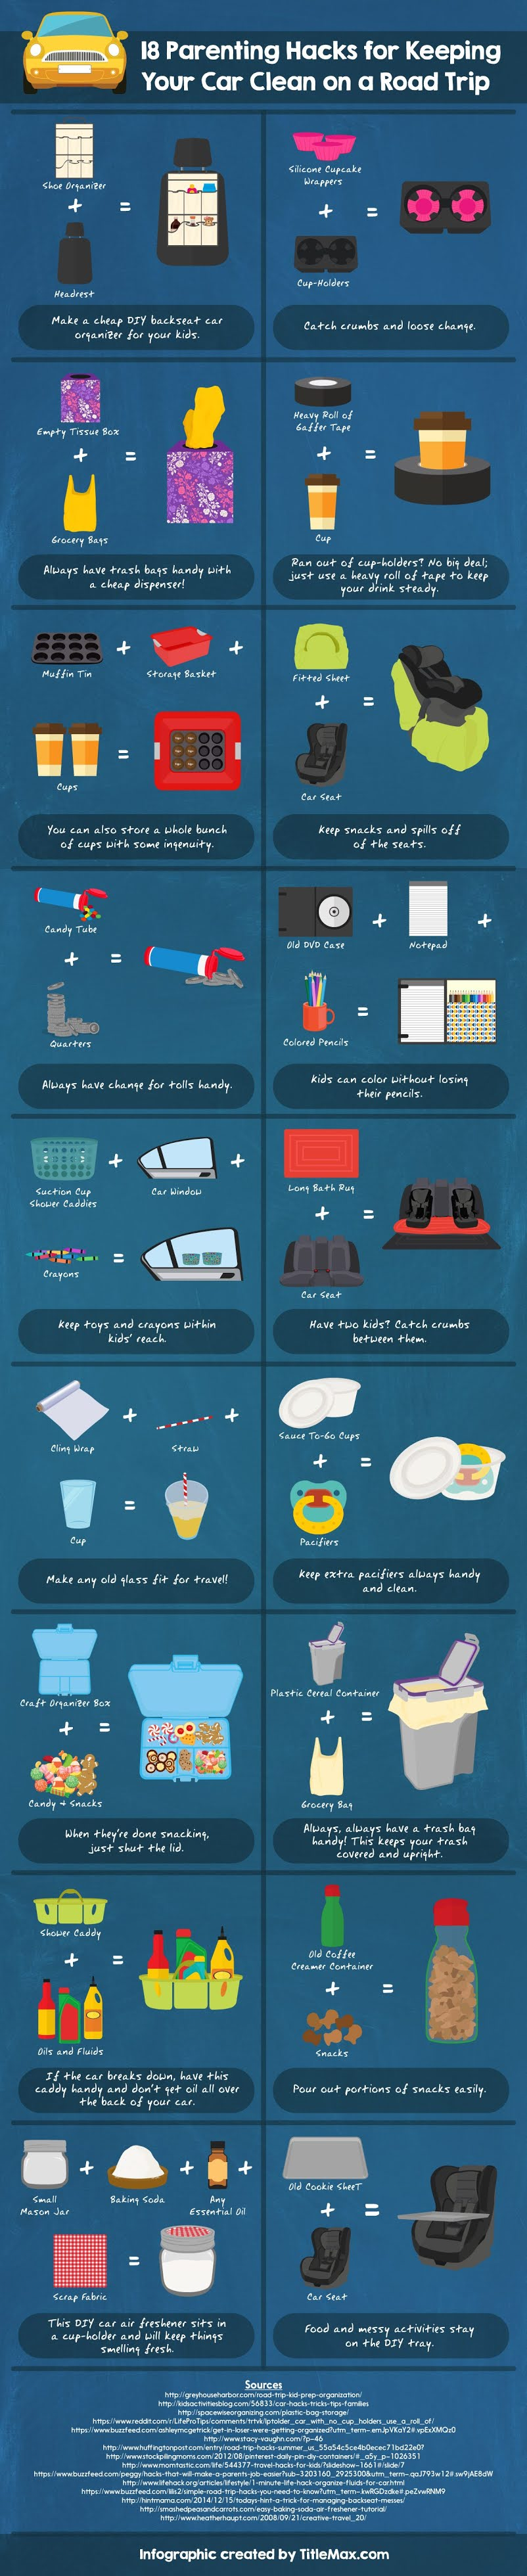 18 Parenting Hacks For Keeping Your Car Clean On A Road Trip #infographic #Parenting Hacks #Car Clean #infographics #Road Trip #Infographic #Car Cleaning